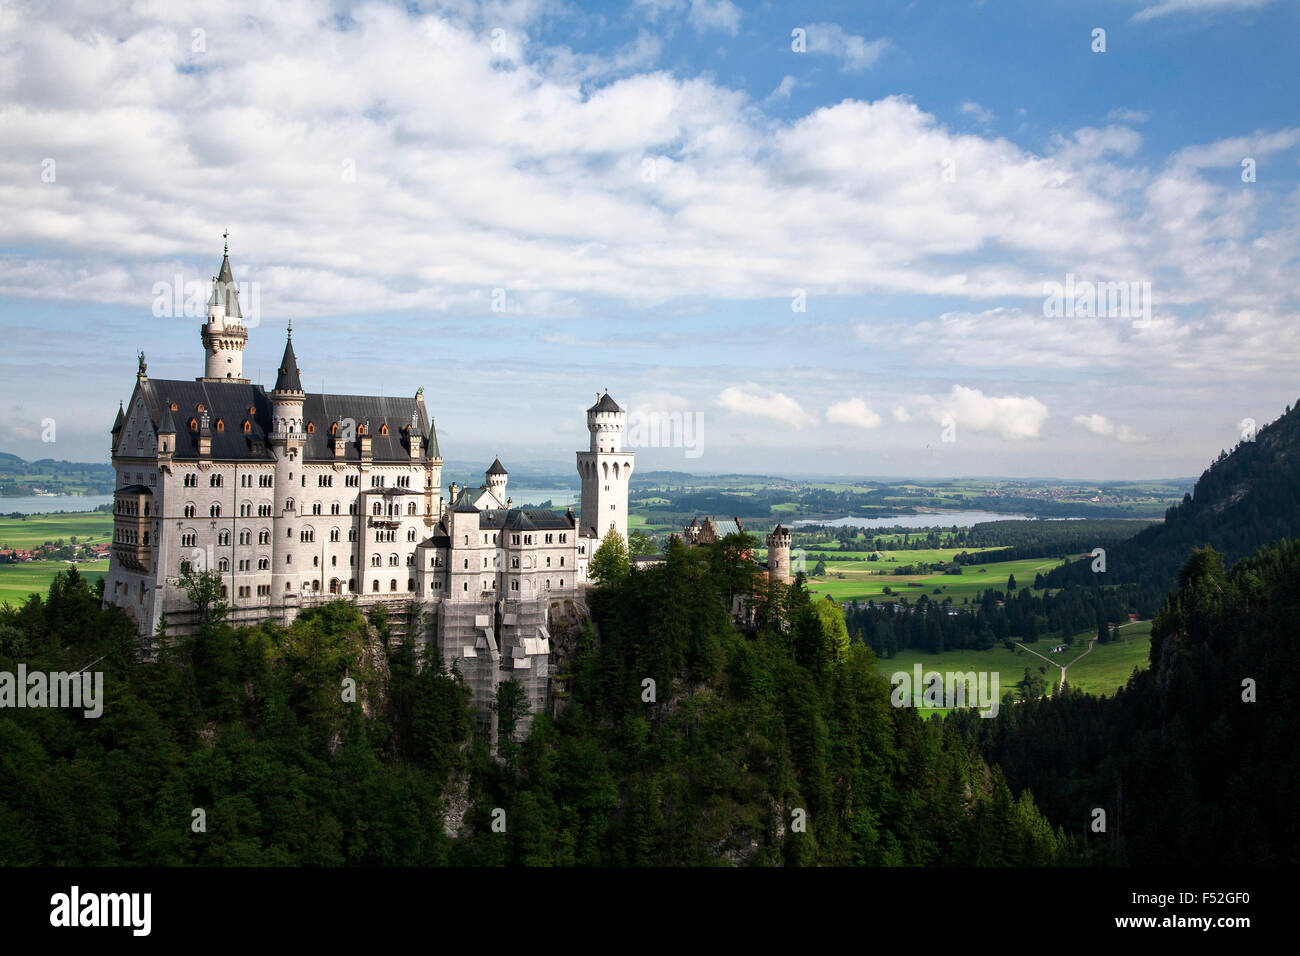 Neuschwanstein Castle overlooks the rolling hills in Bavaria, Germany. Stock Photo